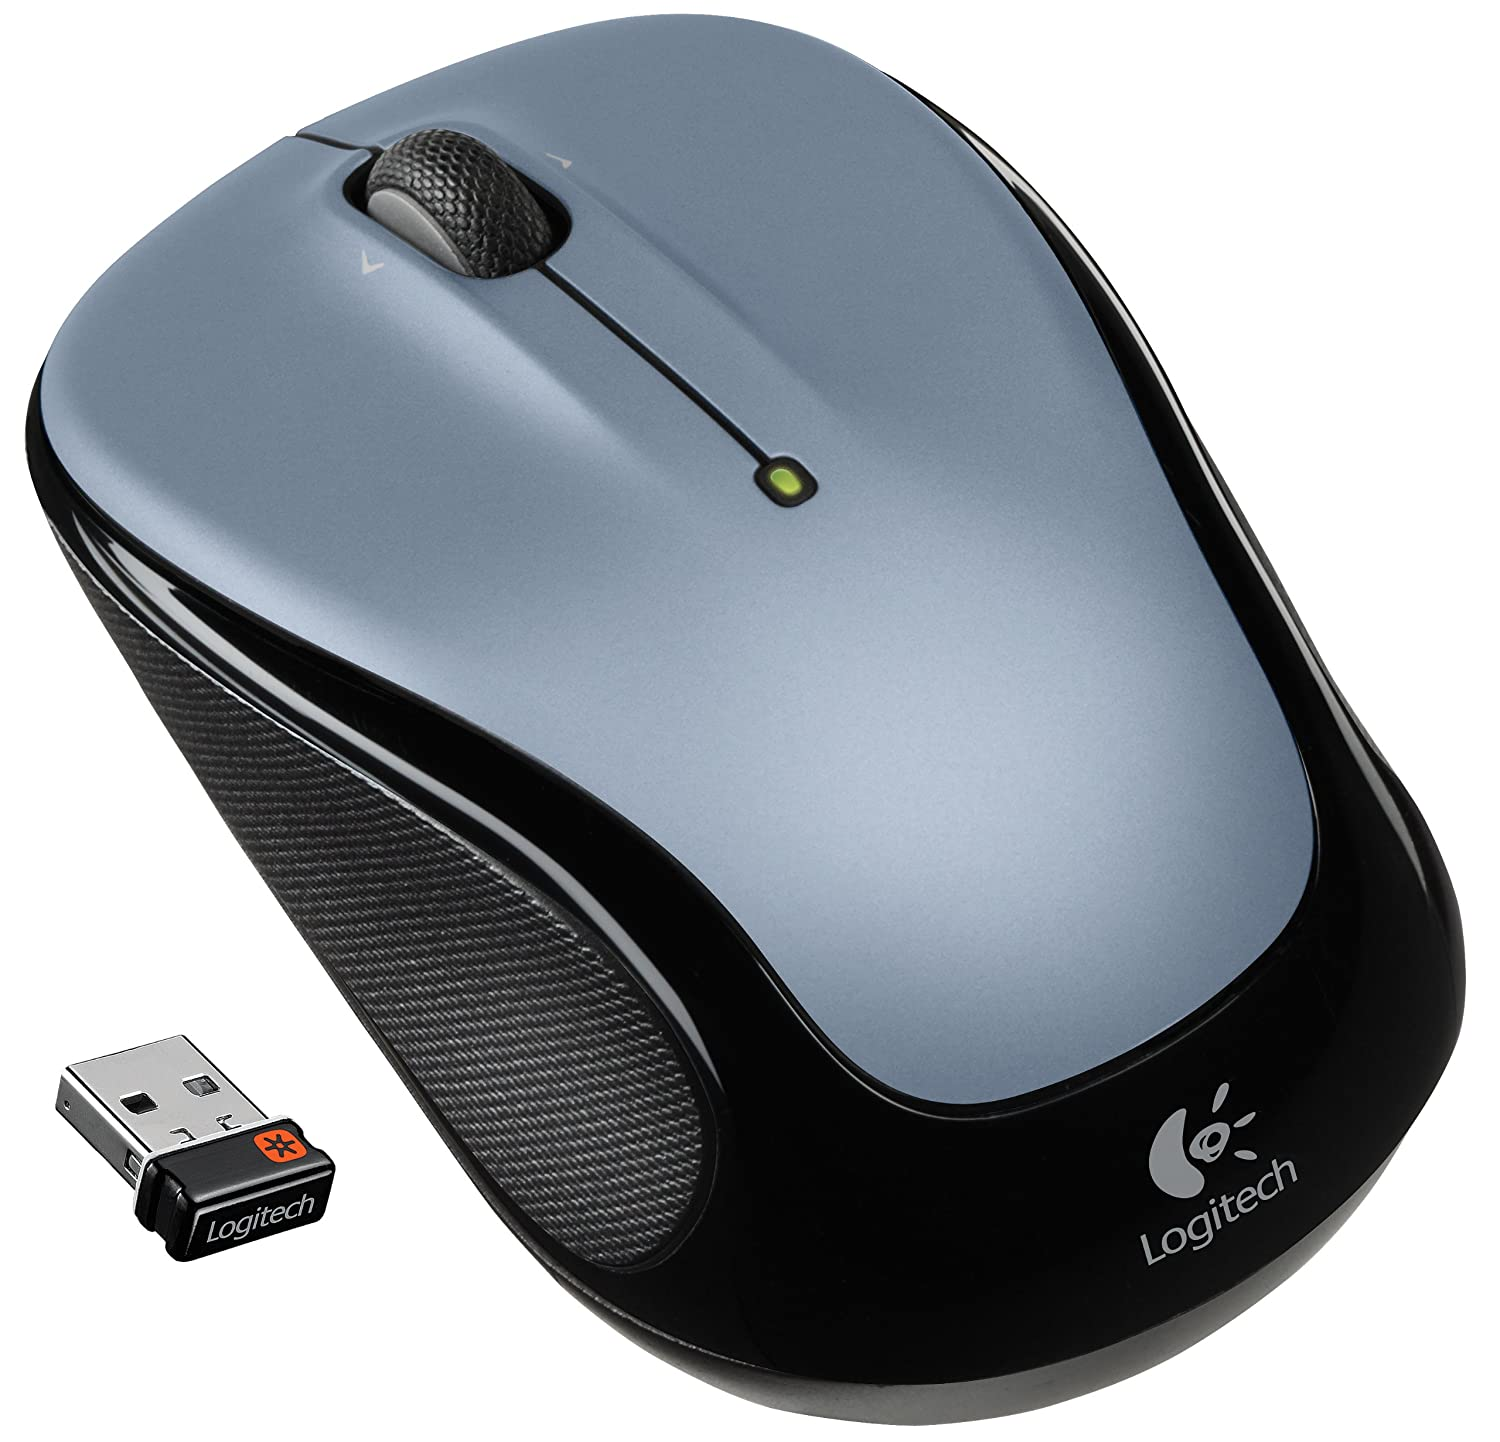 LOGITECH M325 WINDOWS 7 X64 DRIVER